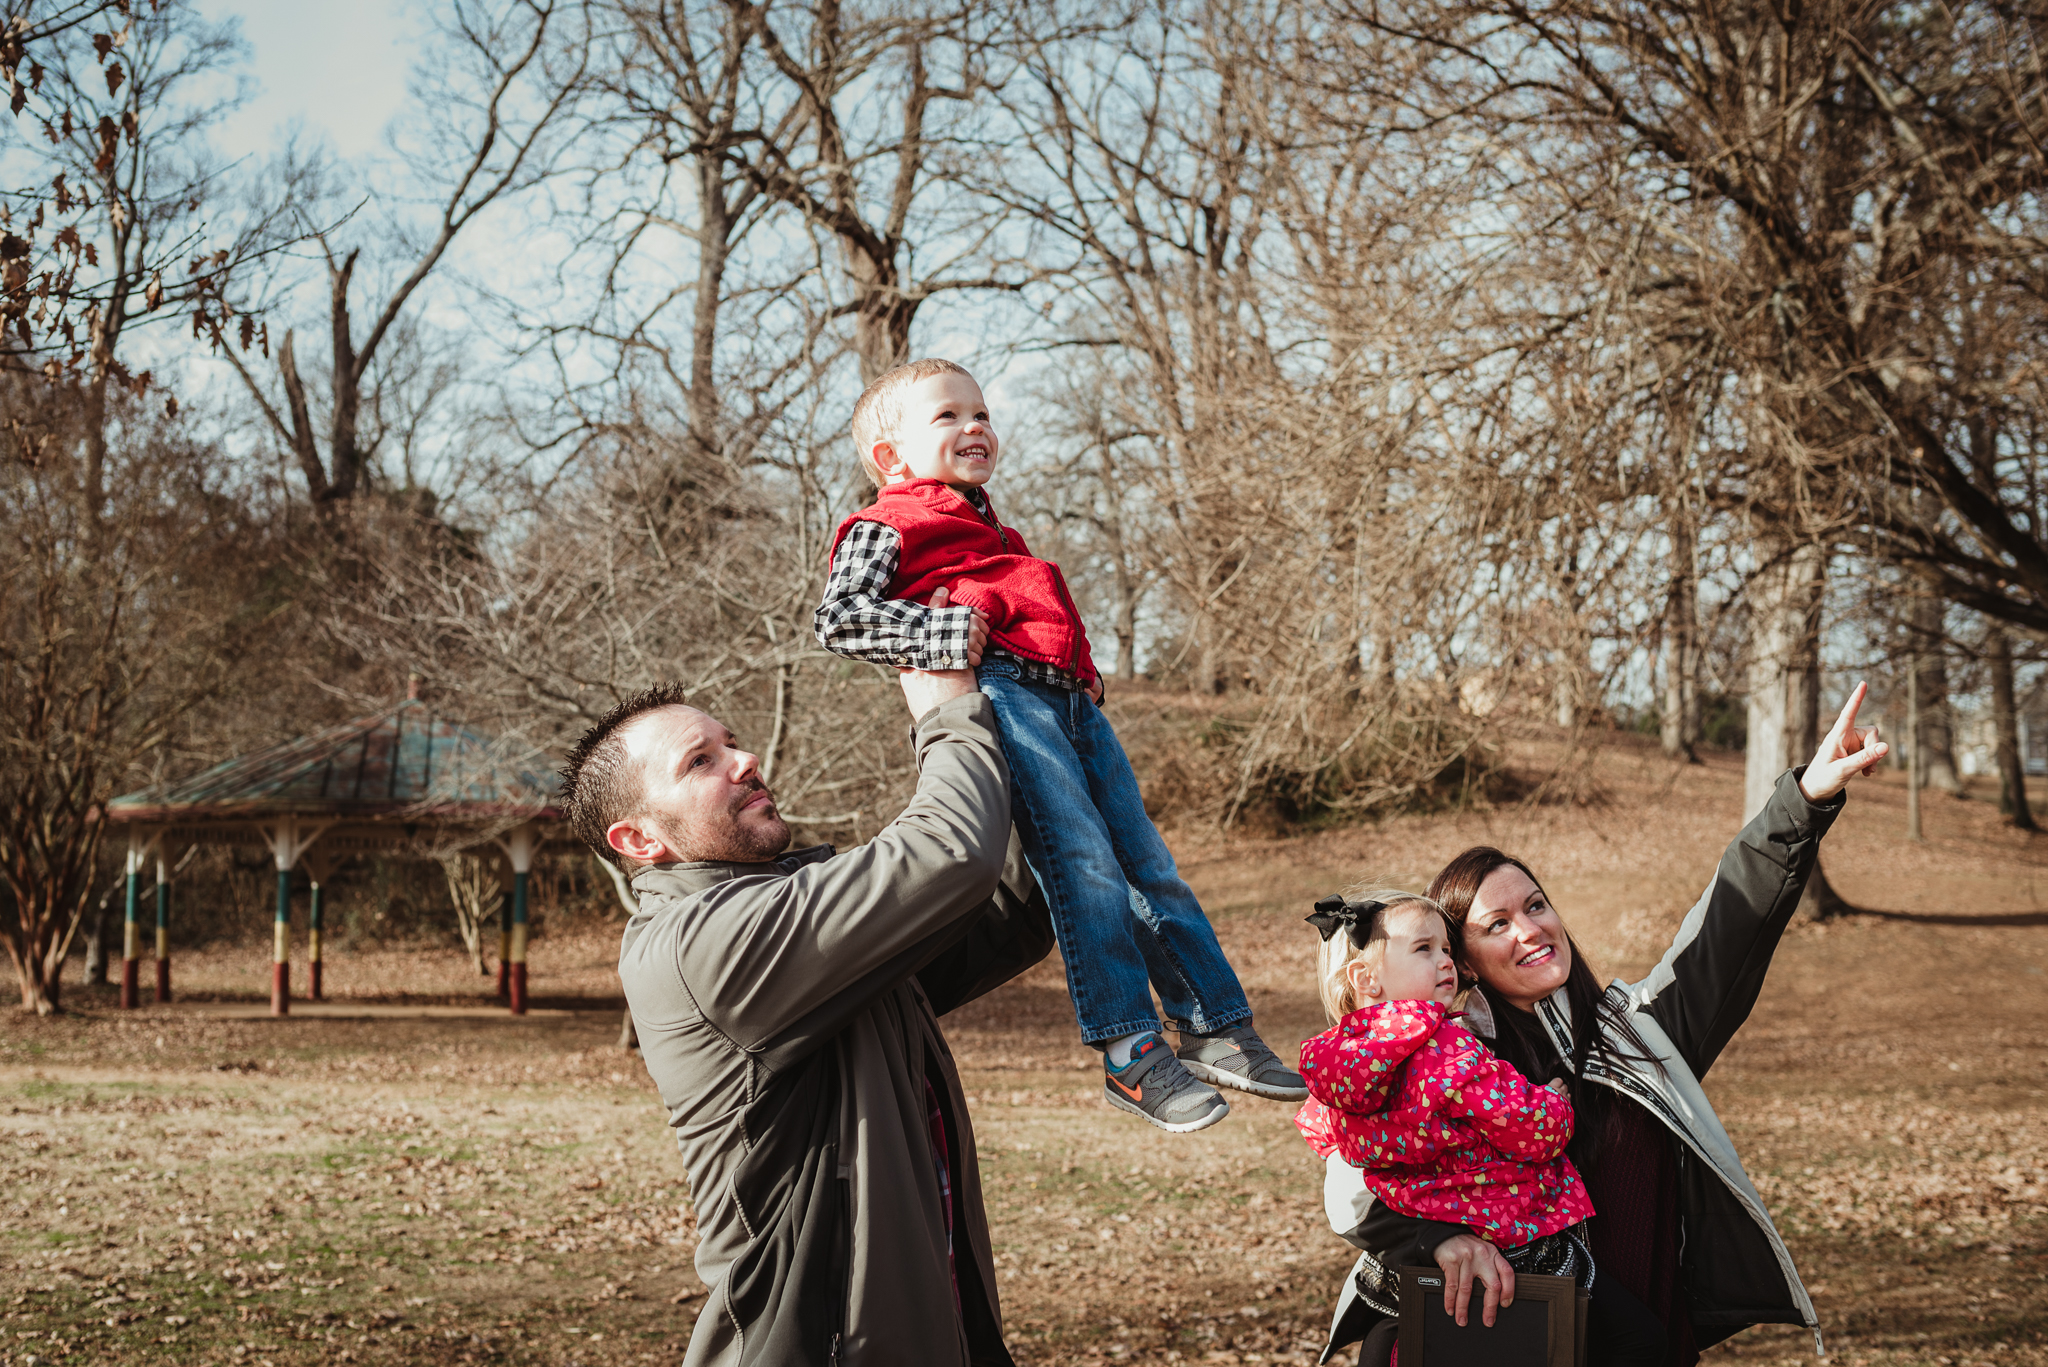 The family stares and points to the sky during their family photo session at Dorothea Dix Park in Raleigh, North Carolina.